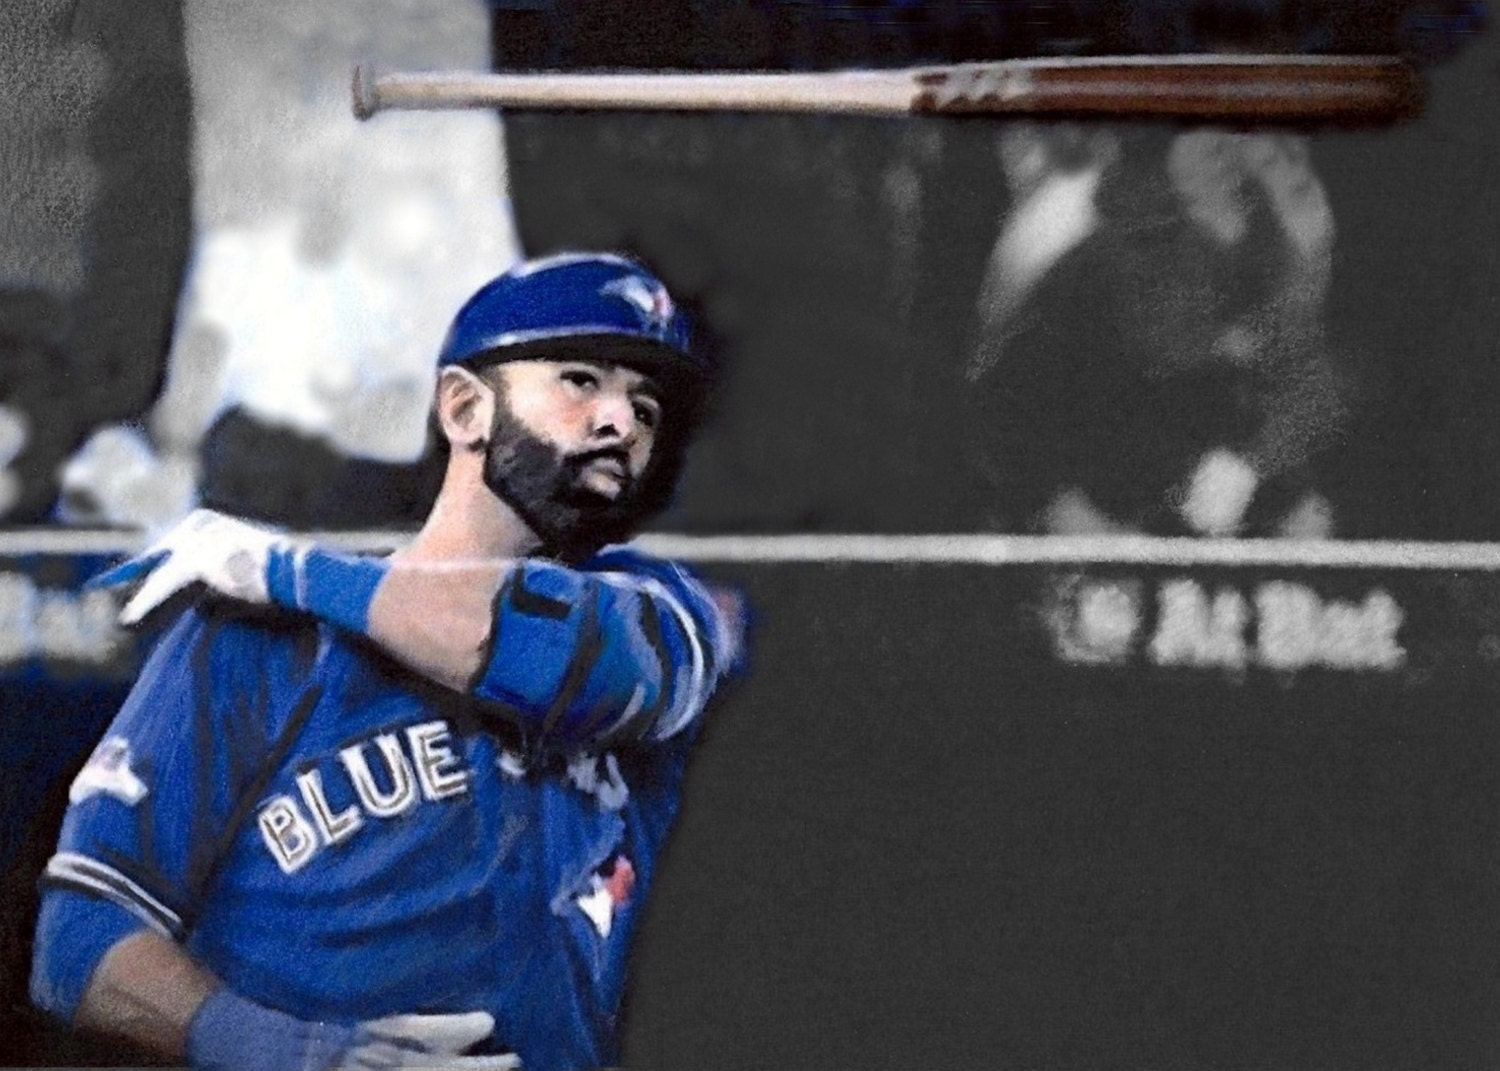 Drawing Blue Jays Bautista Bat Flip by likenessbycorry on Etsy